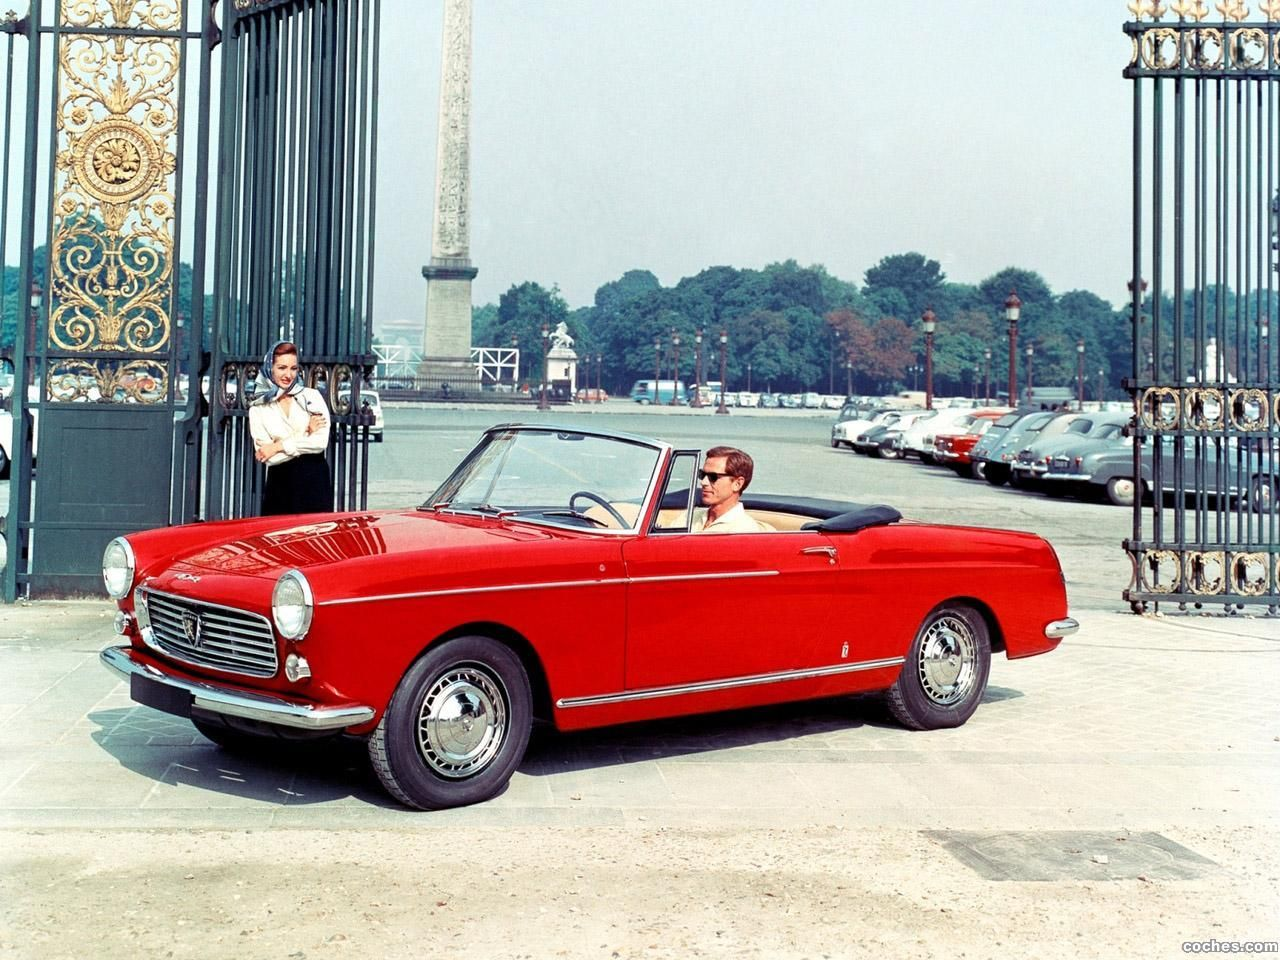 Peugeot 404 Cabriolet The Second Most Beautiful Car In The